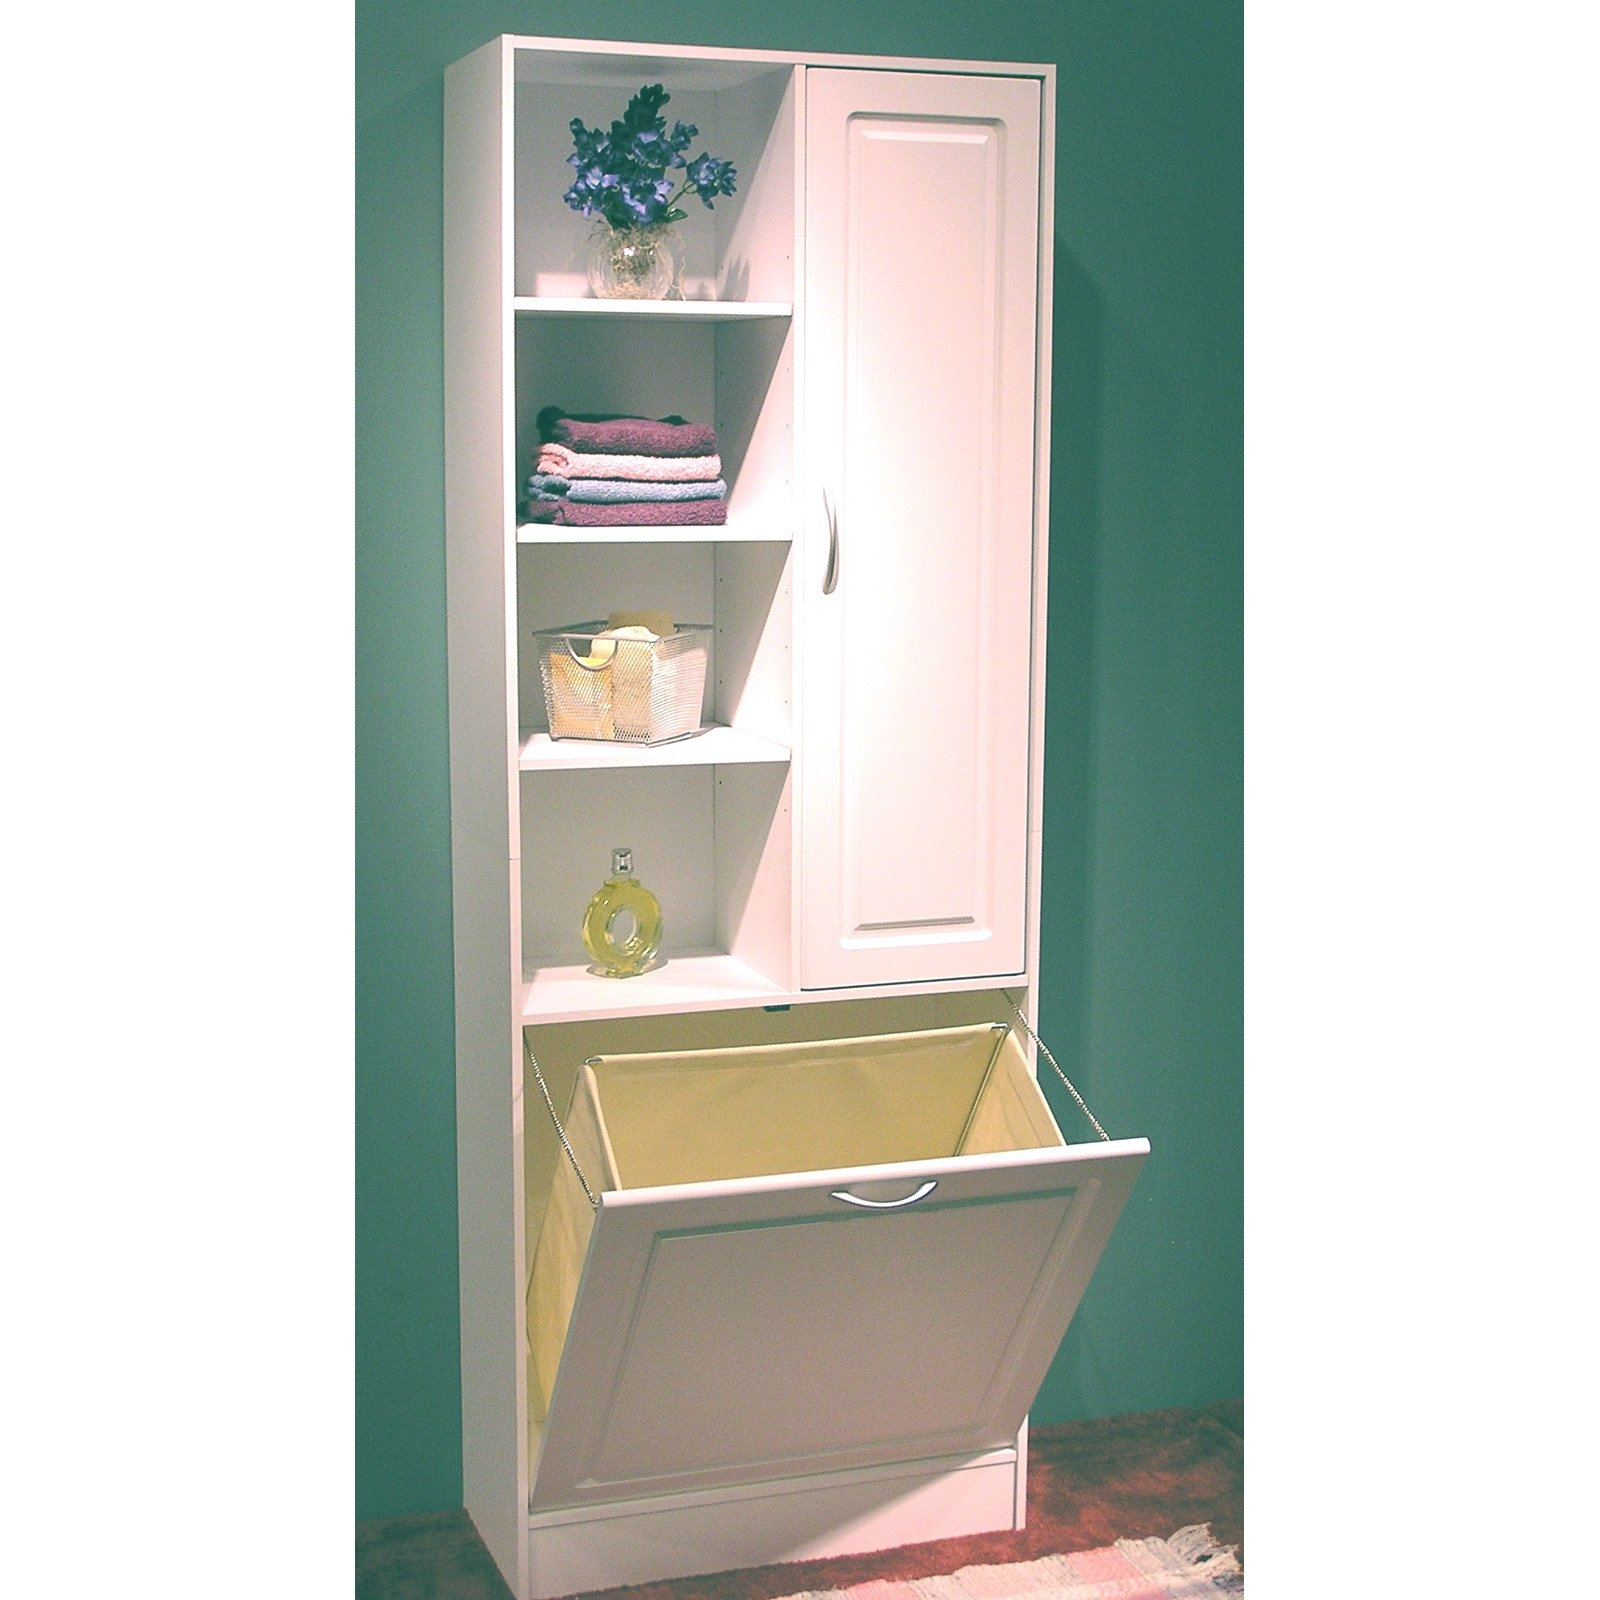 Bathroom Cabinet With Built In Laundry Basket